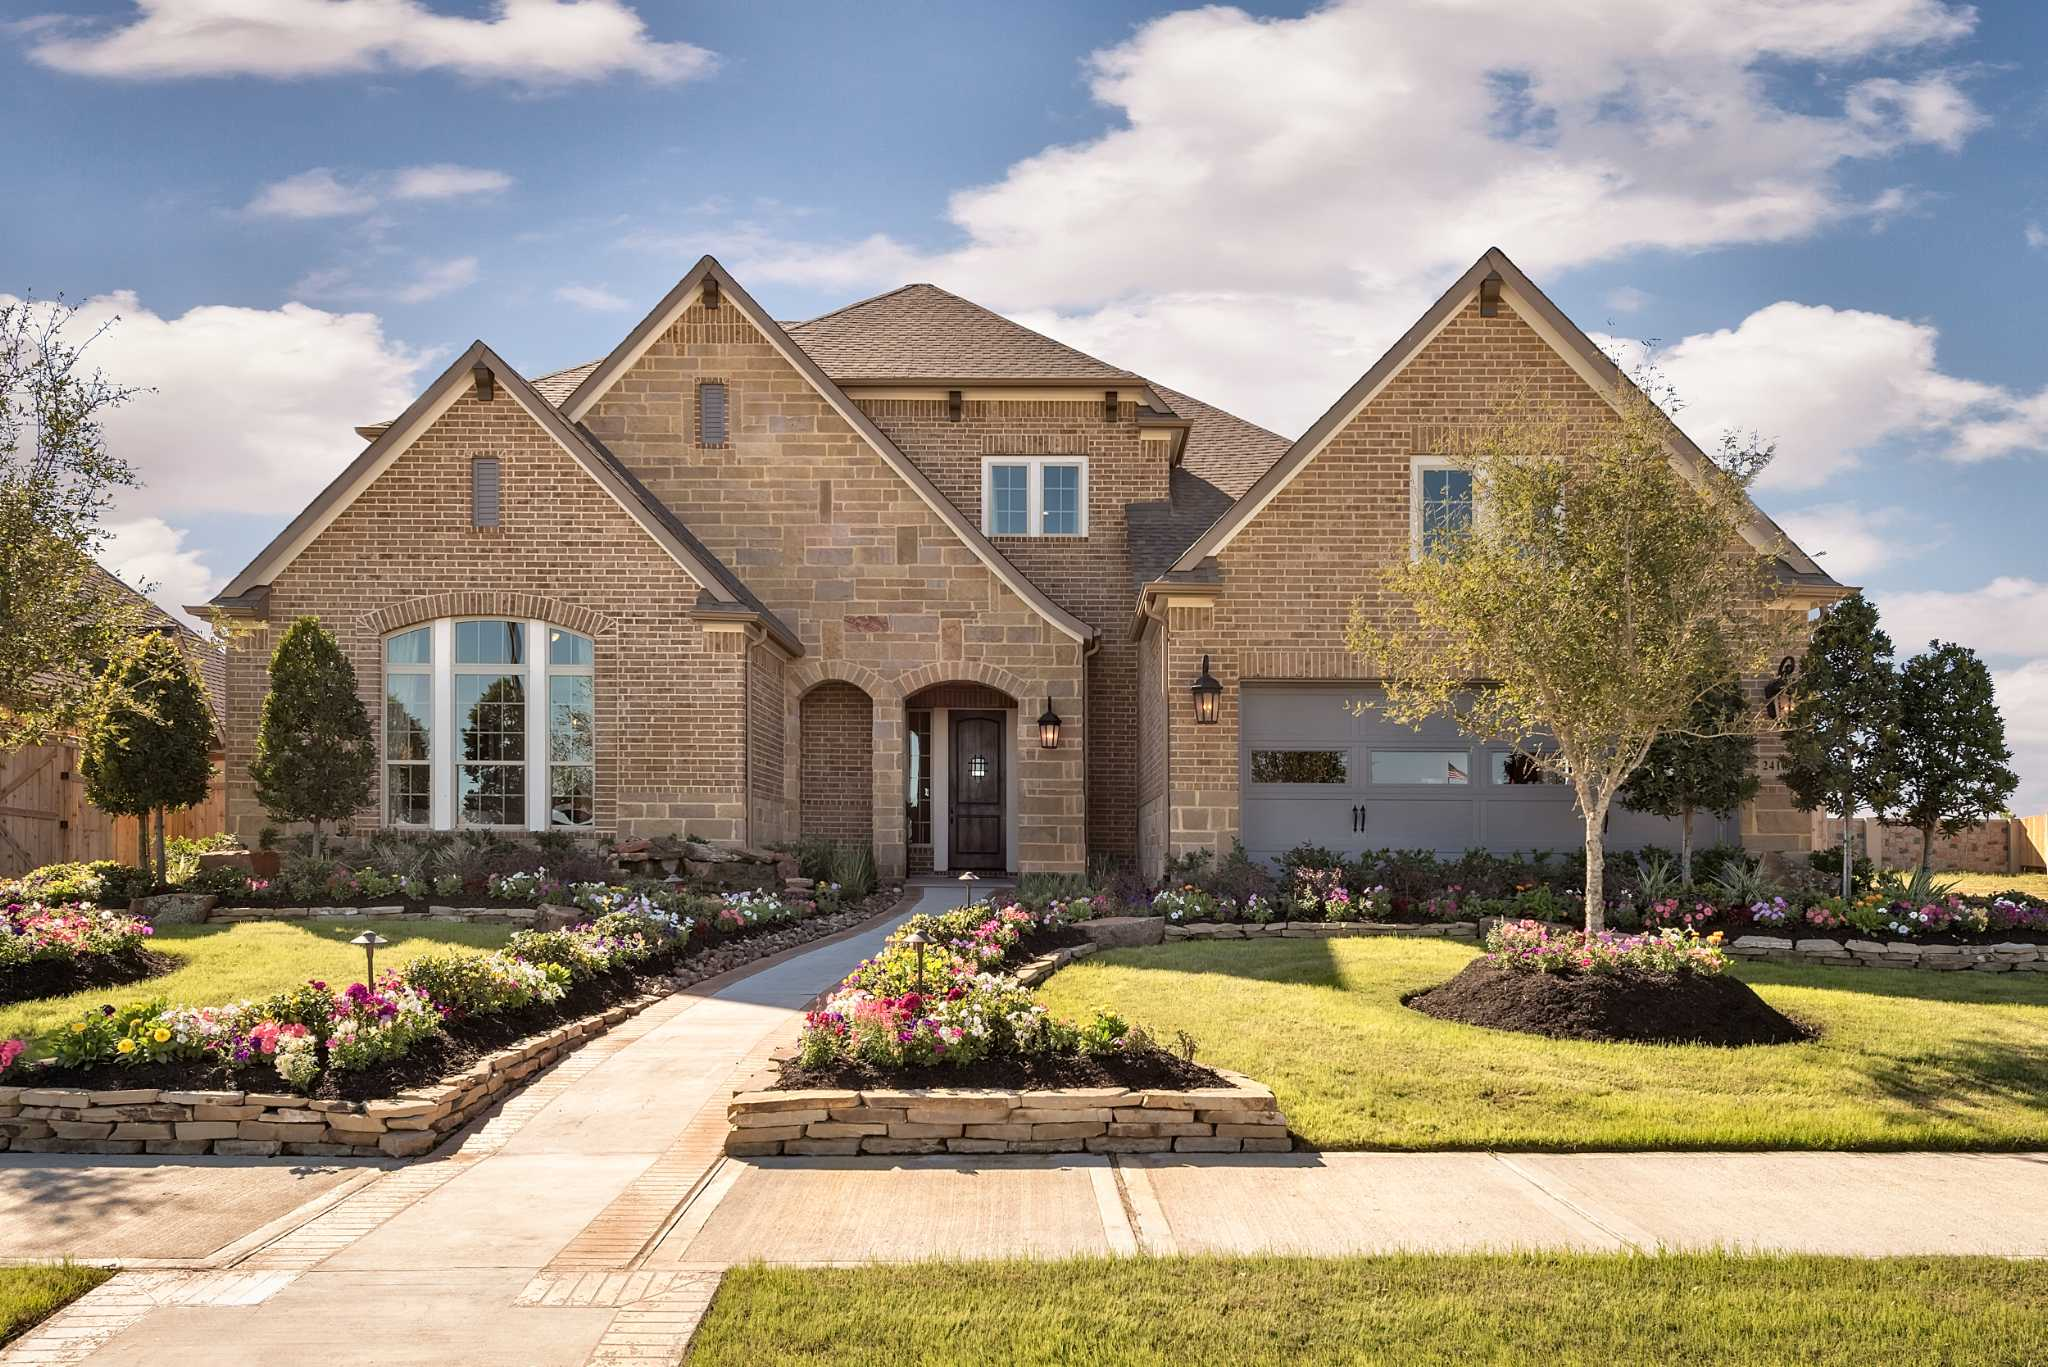 Taylor Morrison Homes Design furthermore Open Air House Designs Panama besides Plantation Home House Plans further Galley Kitchen Designs In Black moreover Floor Plan Toll Brothers Palisade. on david weekley homes floor plans